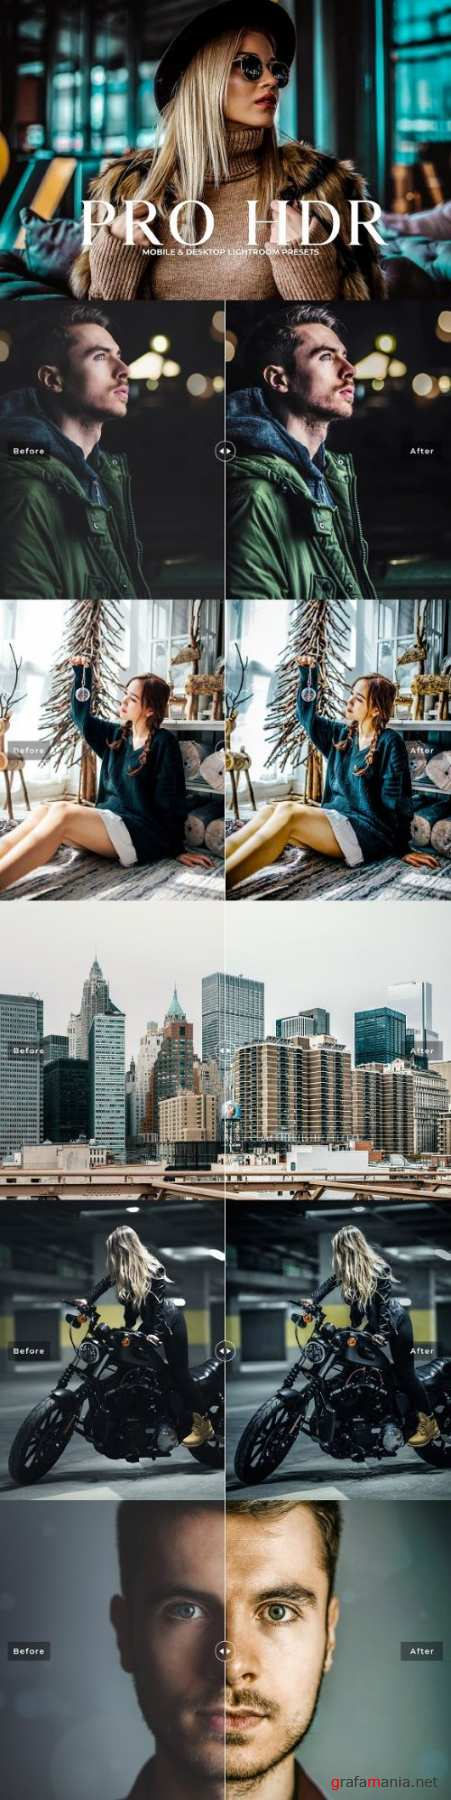 Pro HDR Collection Lightroom Presets 3418776